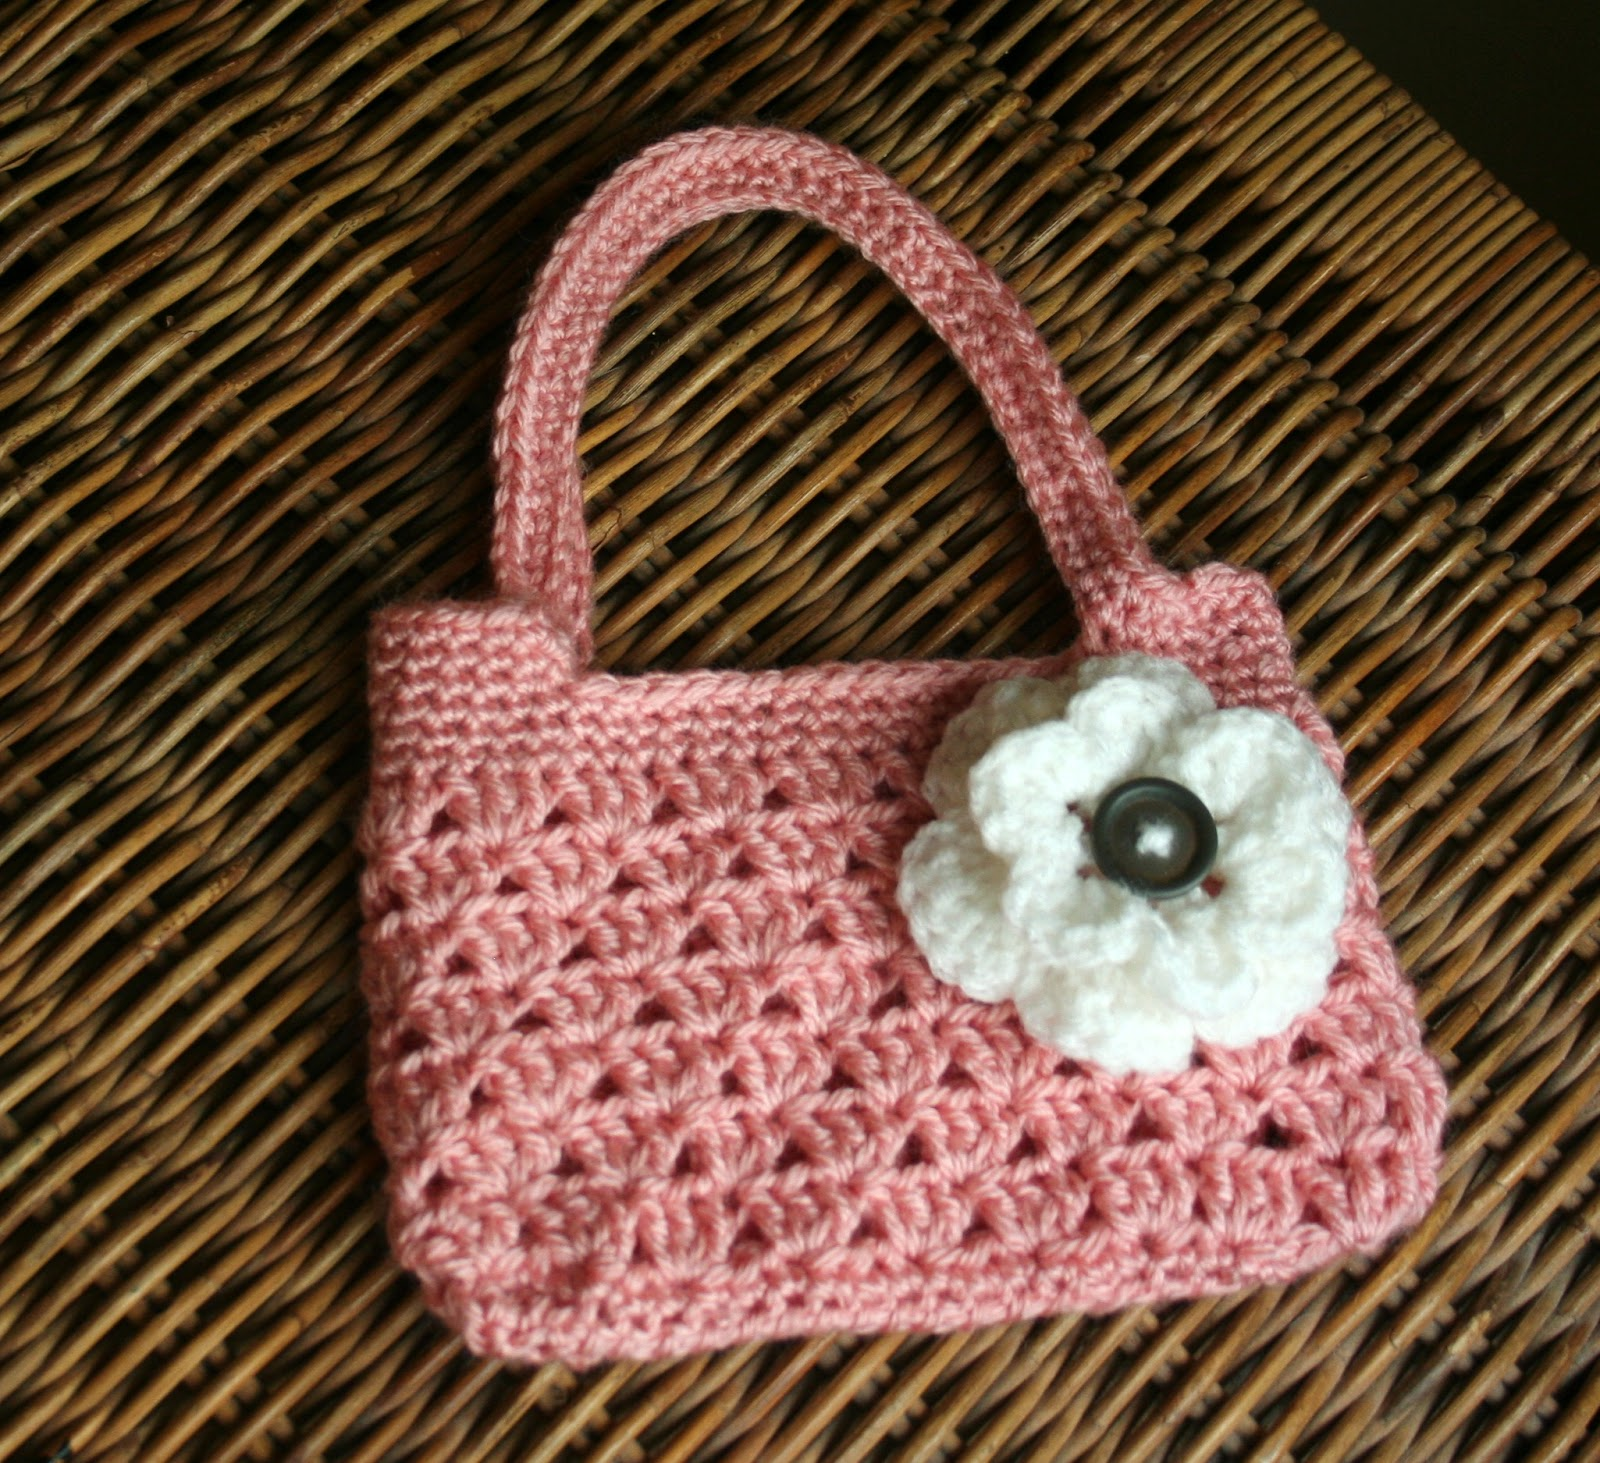 Crochet Bag Pattern Easy : Tampa Bay Crochet: Free Easy Crochet Purse Pattern